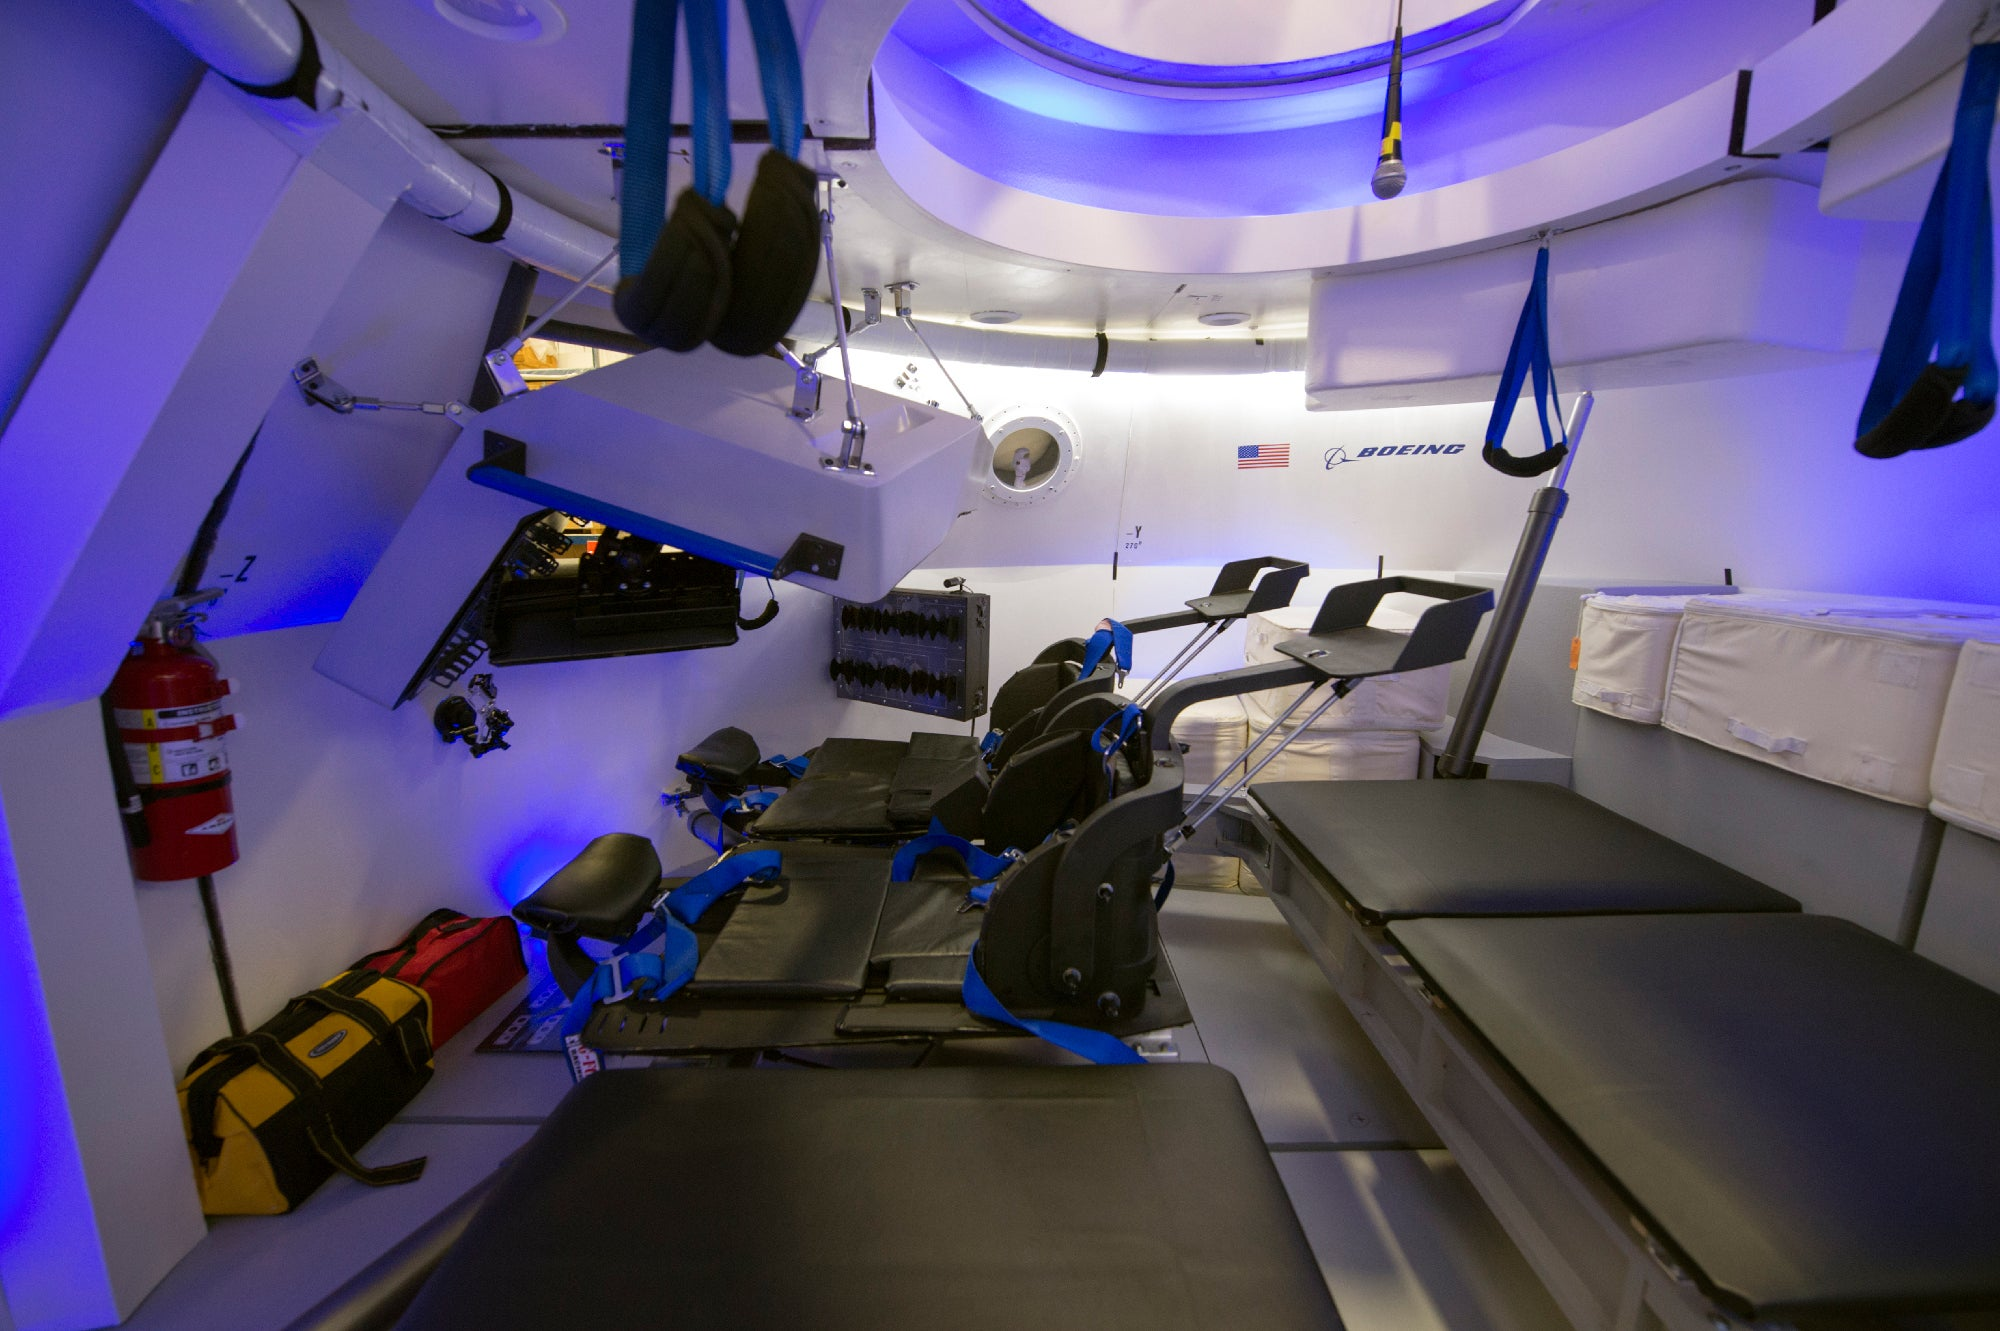 Boeing's New Space Taxi Has the Cleanest Cabin on Earth